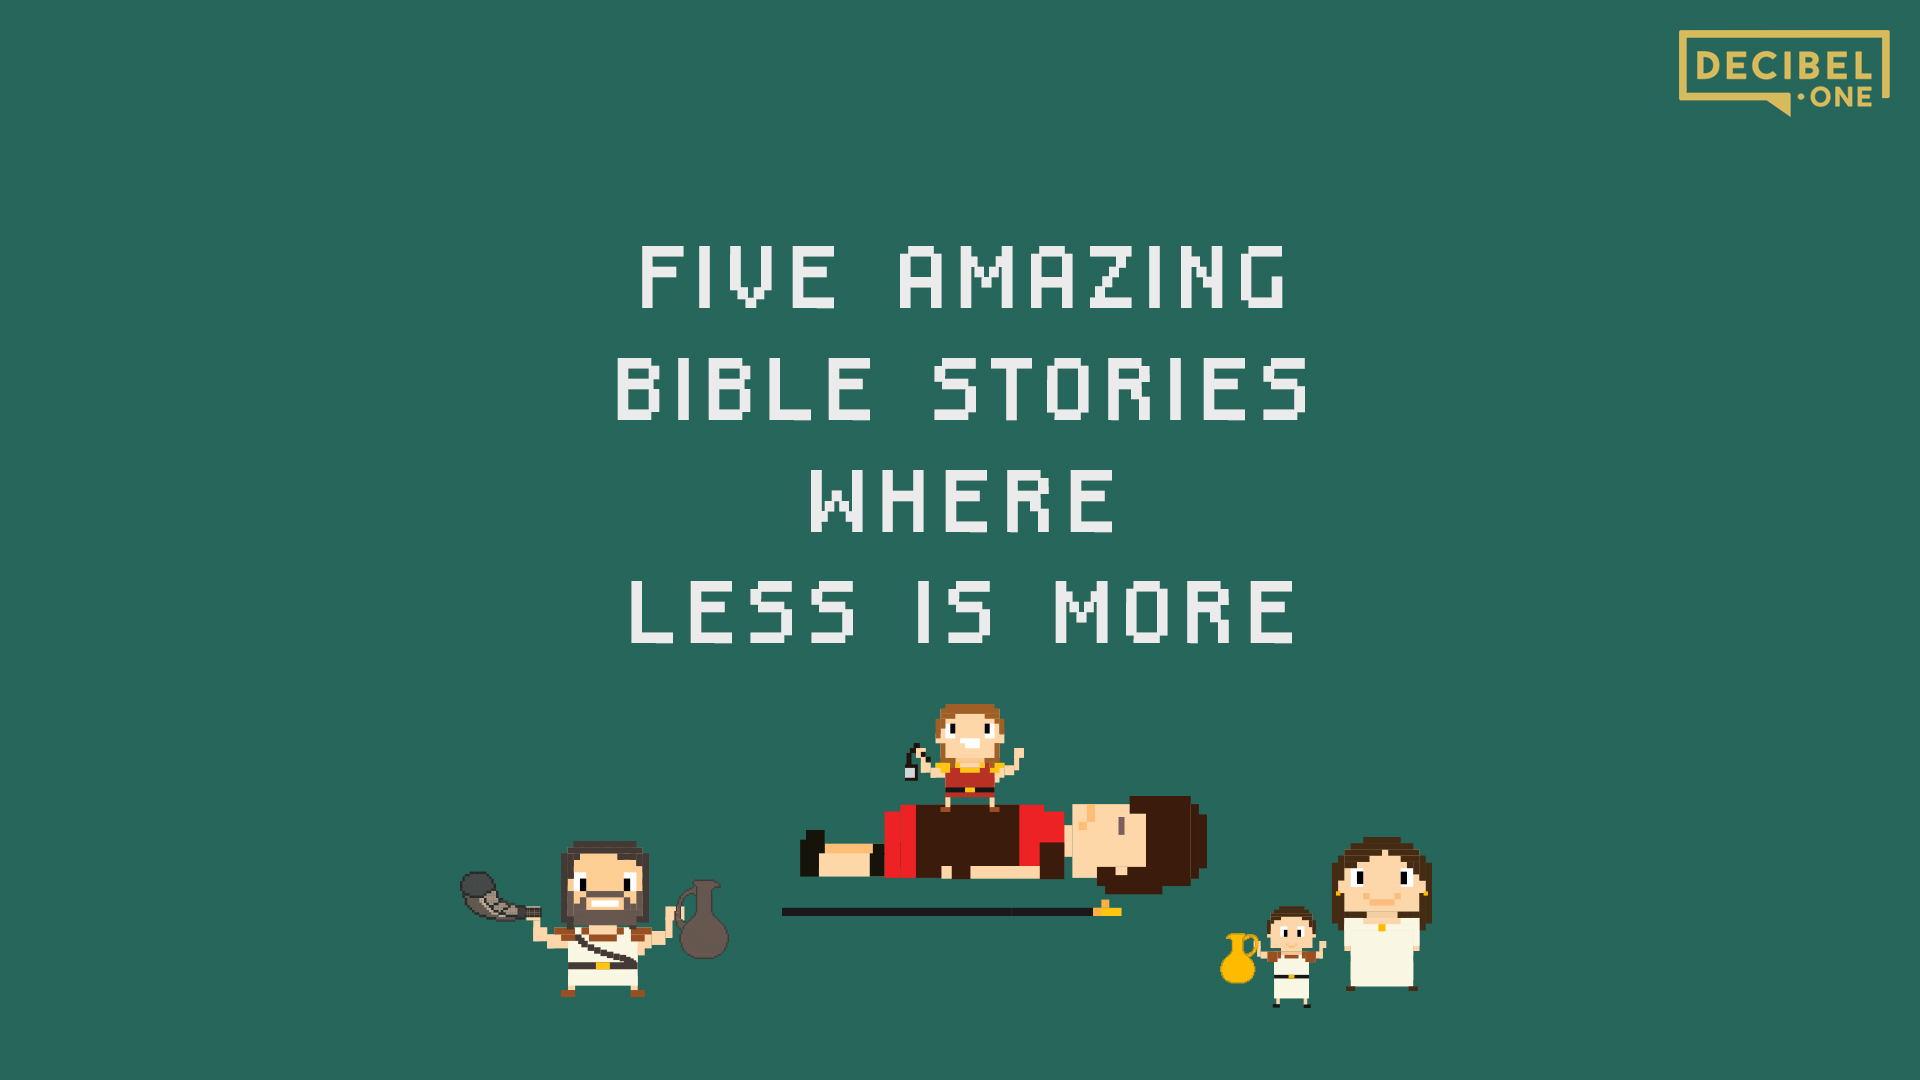 5 amazing Bible stories where less is more